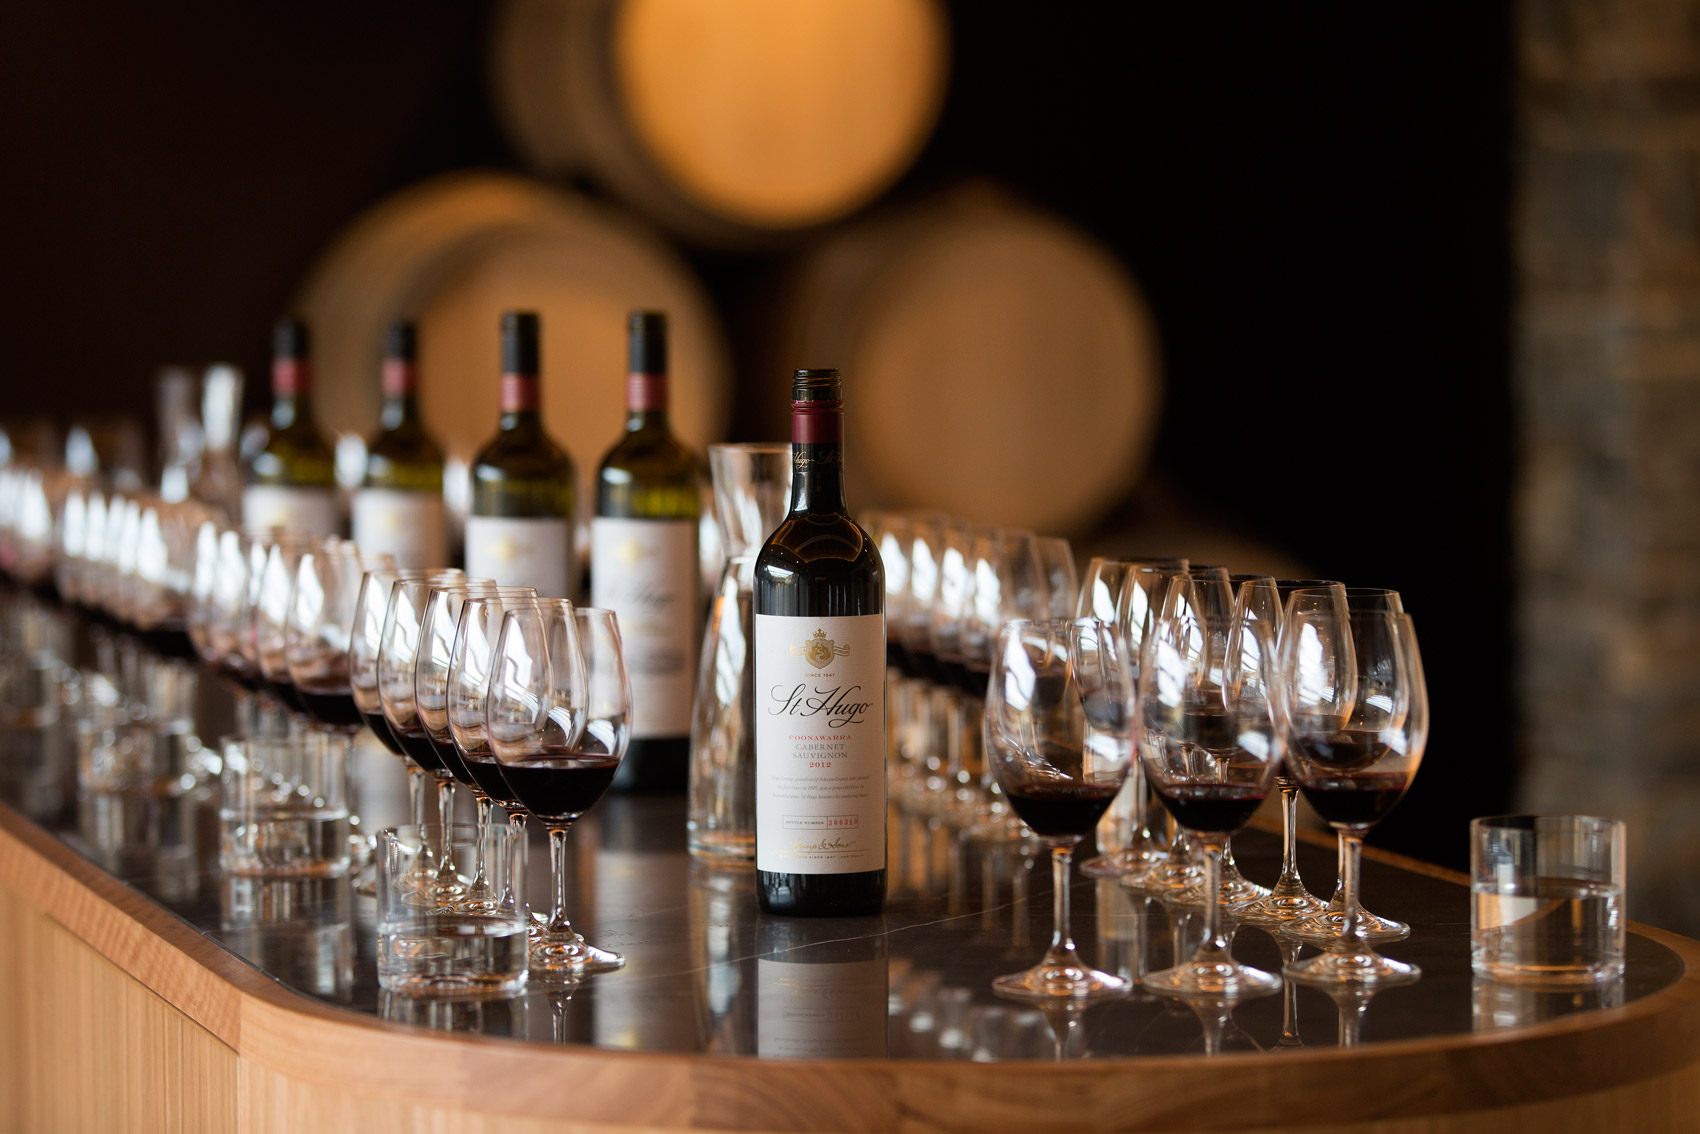 St Hugo Gives A Once In A Lifetime Wine Experience